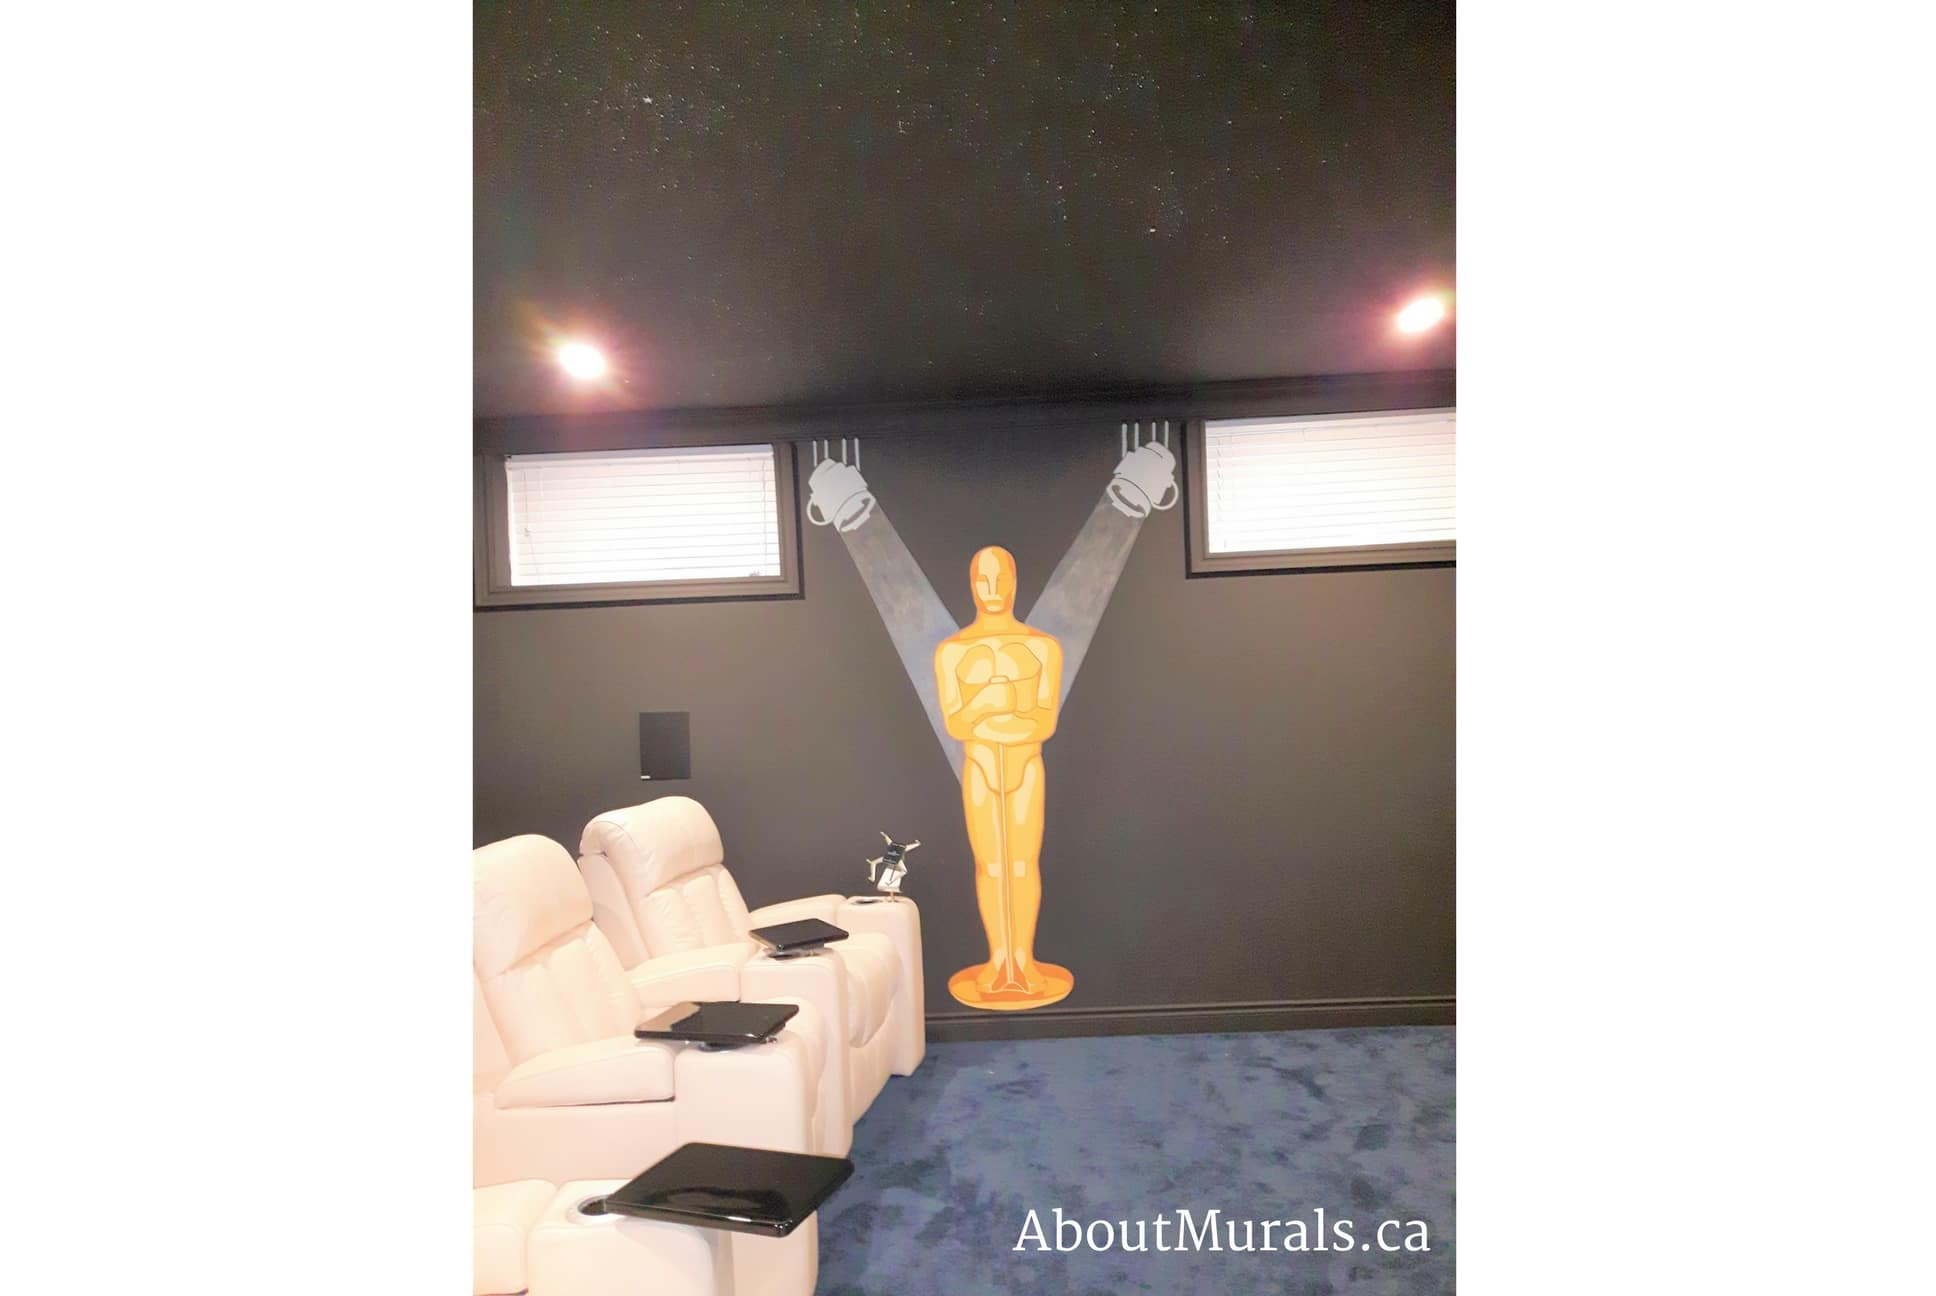 A painted mural of Oscar from the Academy Awards